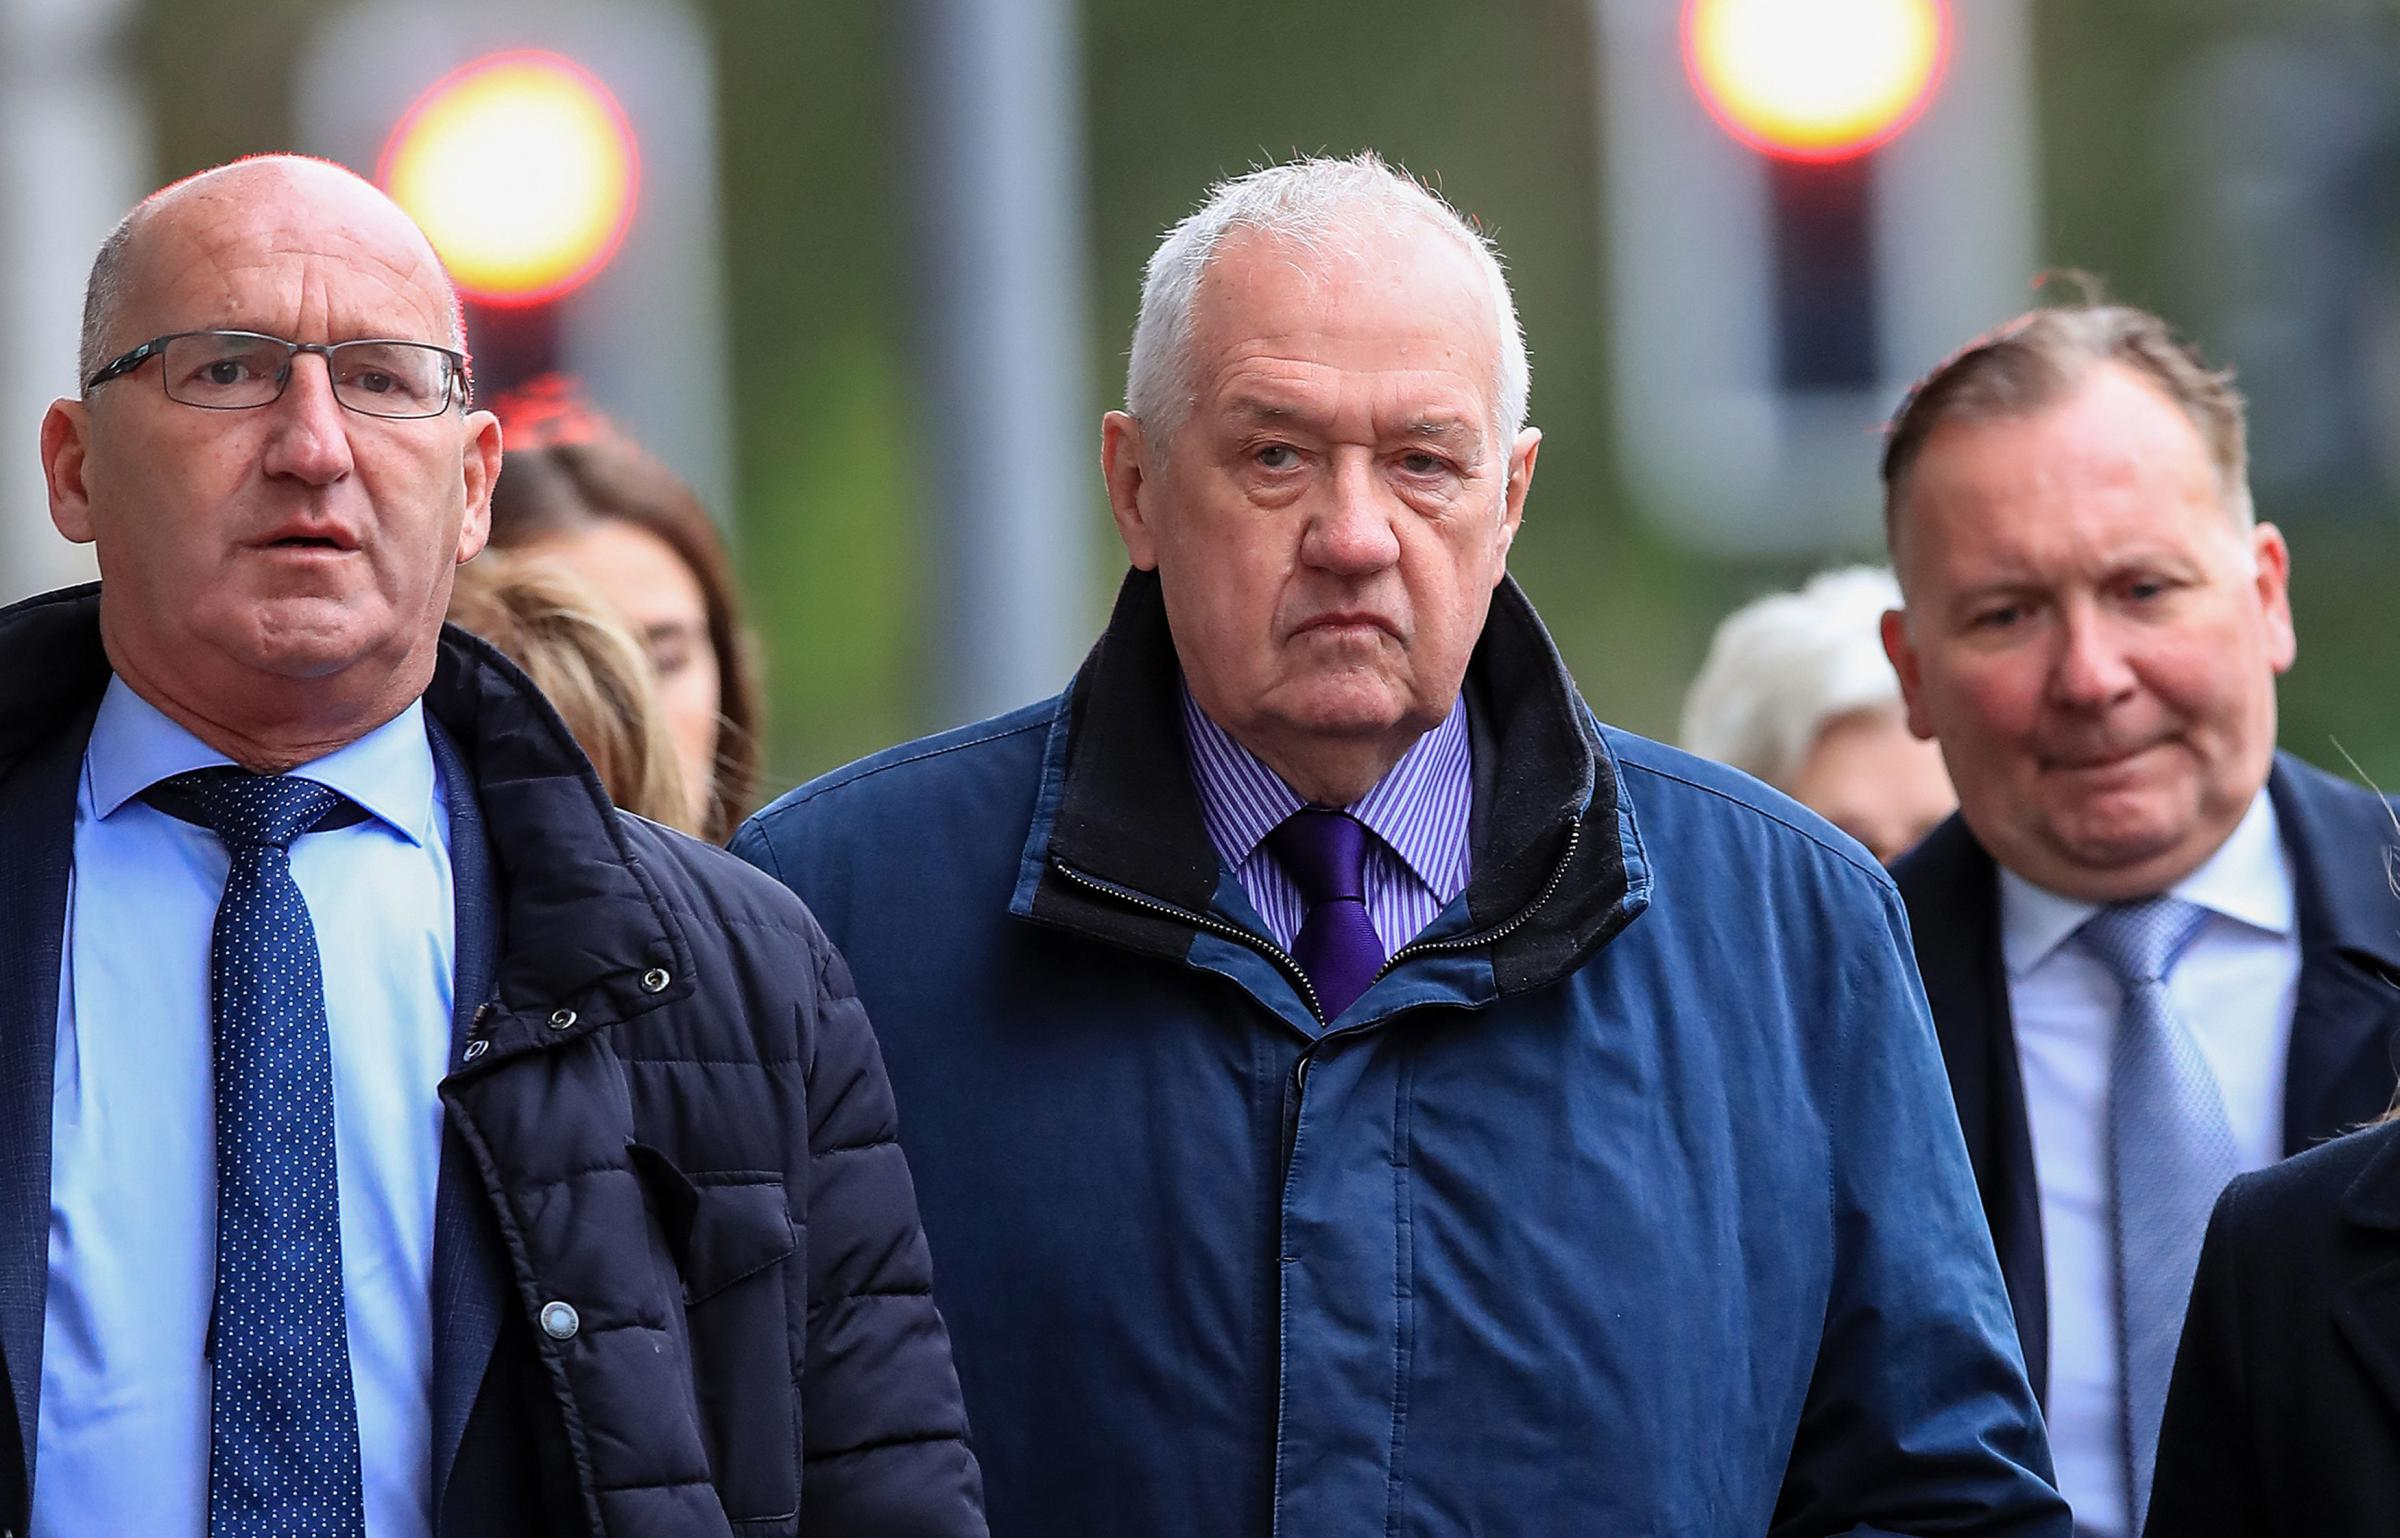 Duckenfield had opportunity to change Hillsborough match plans, court told